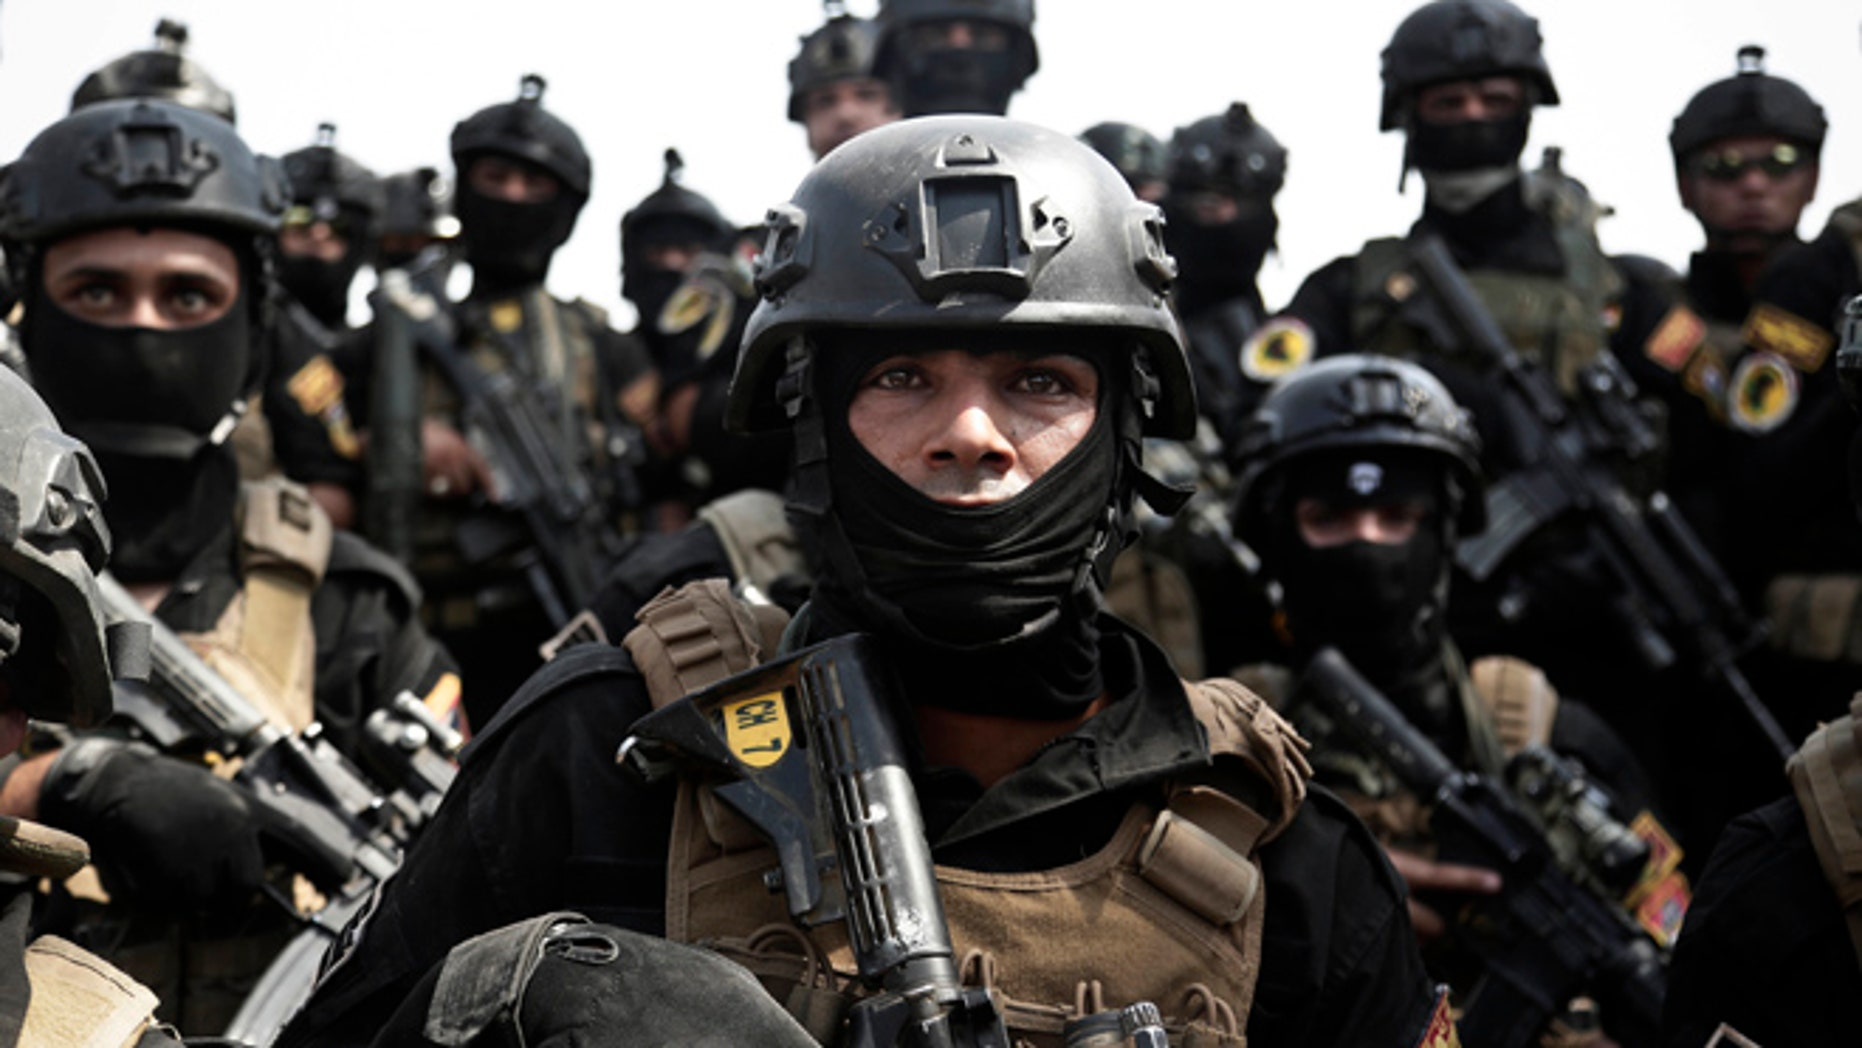 In this Saturday, Aug. 13, 2016 photo, a soldier from the 1st Battalion of the Iraqi Special Operations Forces listens to an address by his commander after a training exercise to prepare for the operation to re-take Mosul from Islamic State militants, in Baghdad, Iraq.